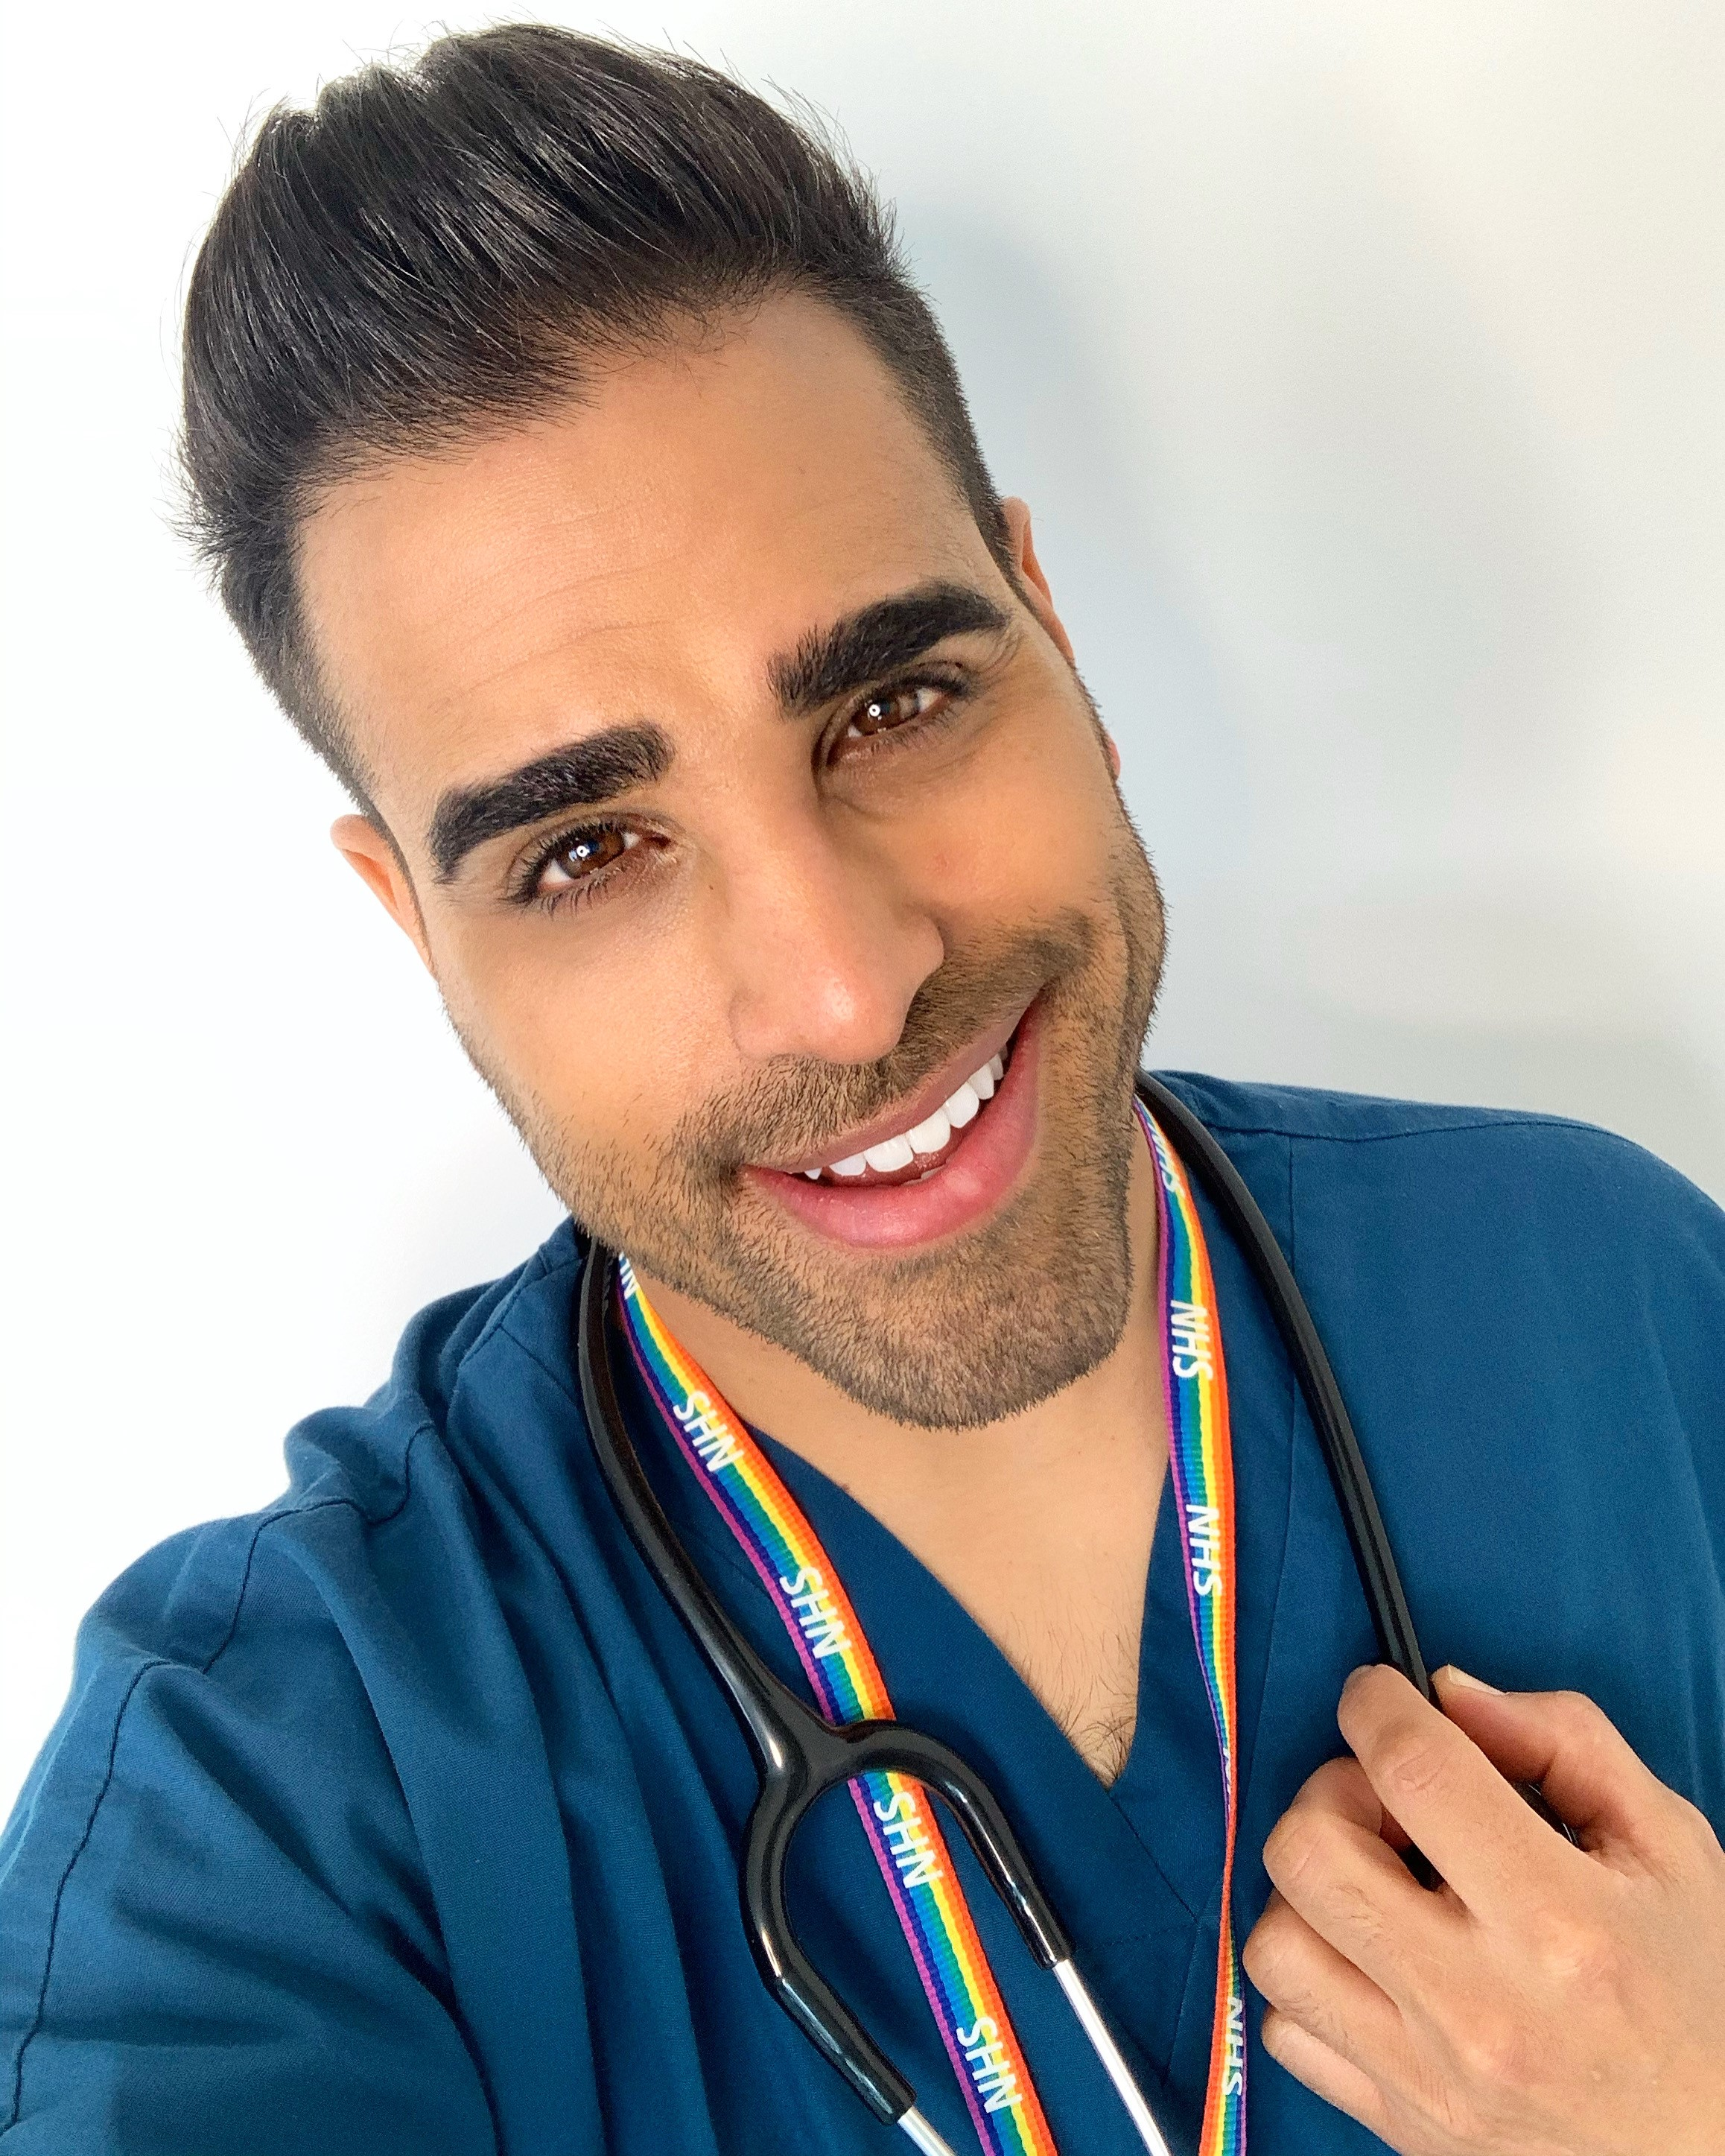 Strictly Come Dancing, Ceebies presenter, Dr Ranj Singh, wearing a blue smock shirt smiling at the camera